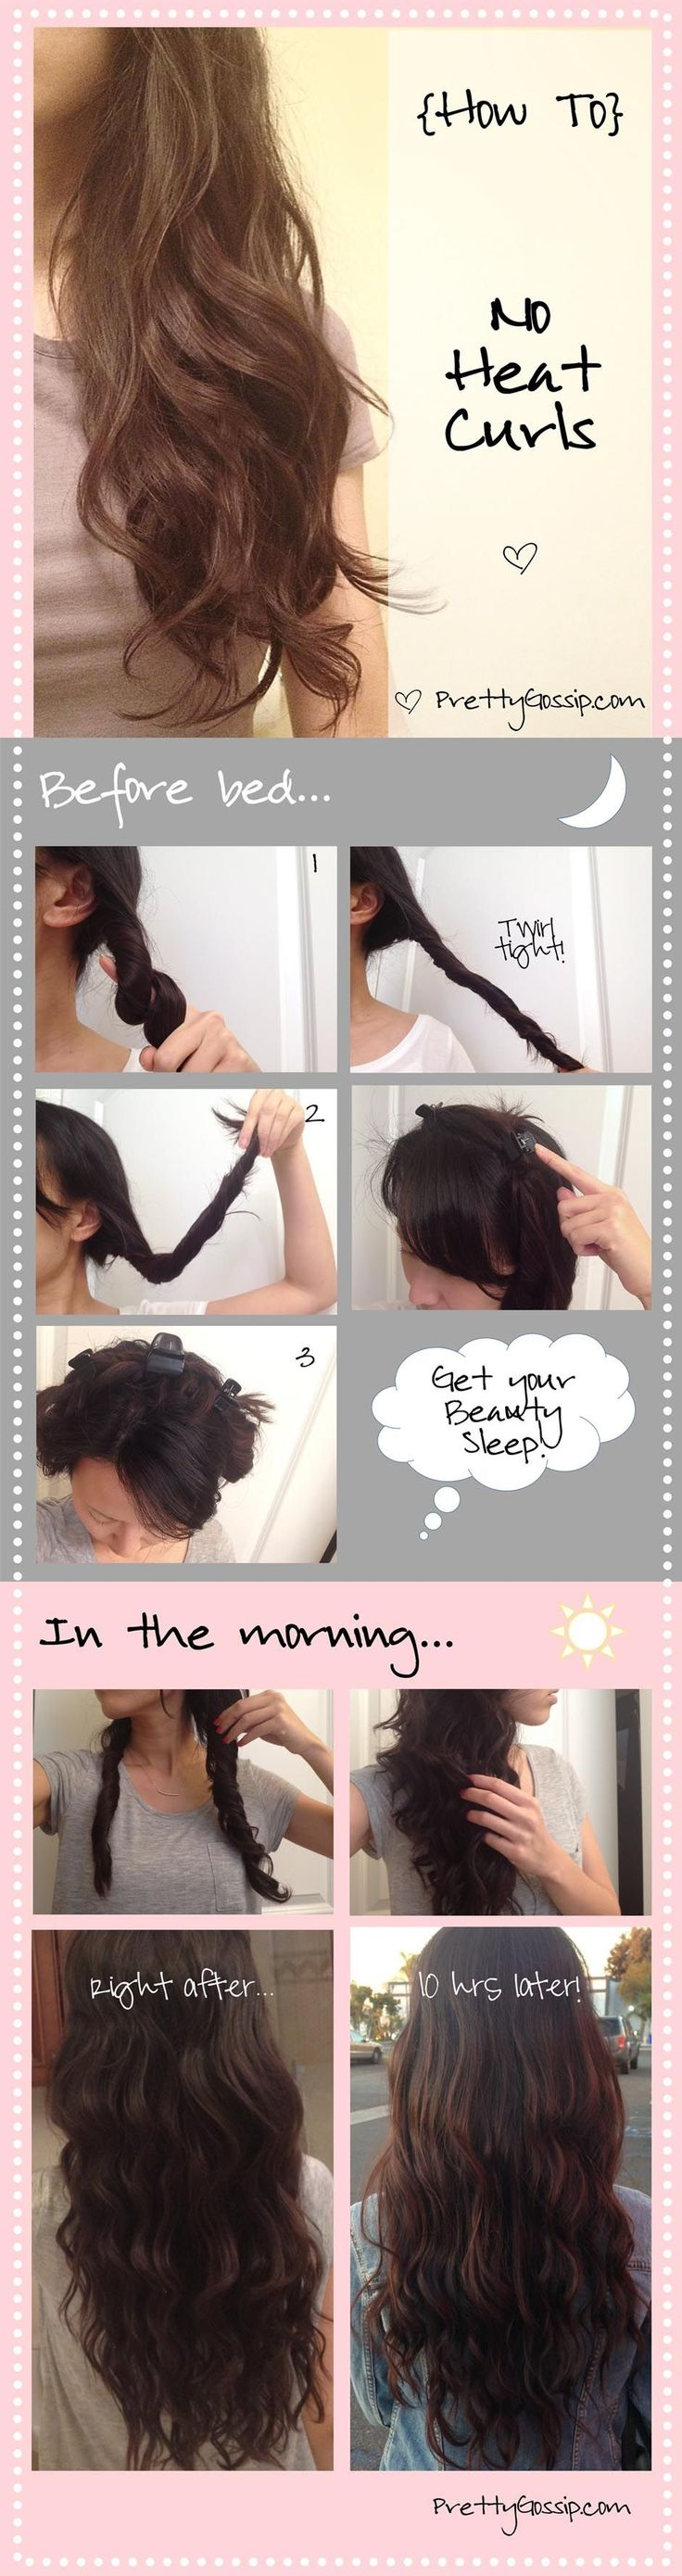 this is actually how I do it when I want easy waves! it'll last longer if you sprtiz your hair with some sea salt spray while its on the clips!